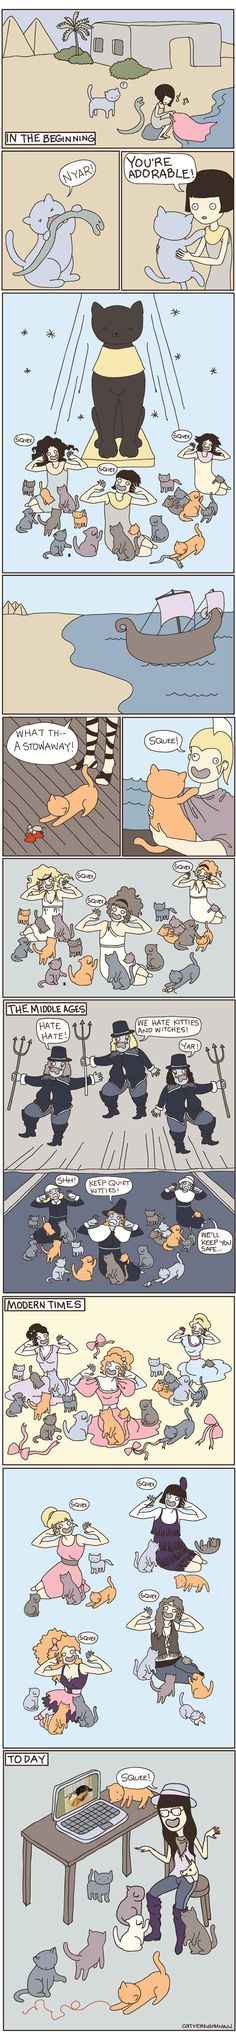 Yessss!!! This is the point of this whole board - why cats and feminism are really, really related!!!